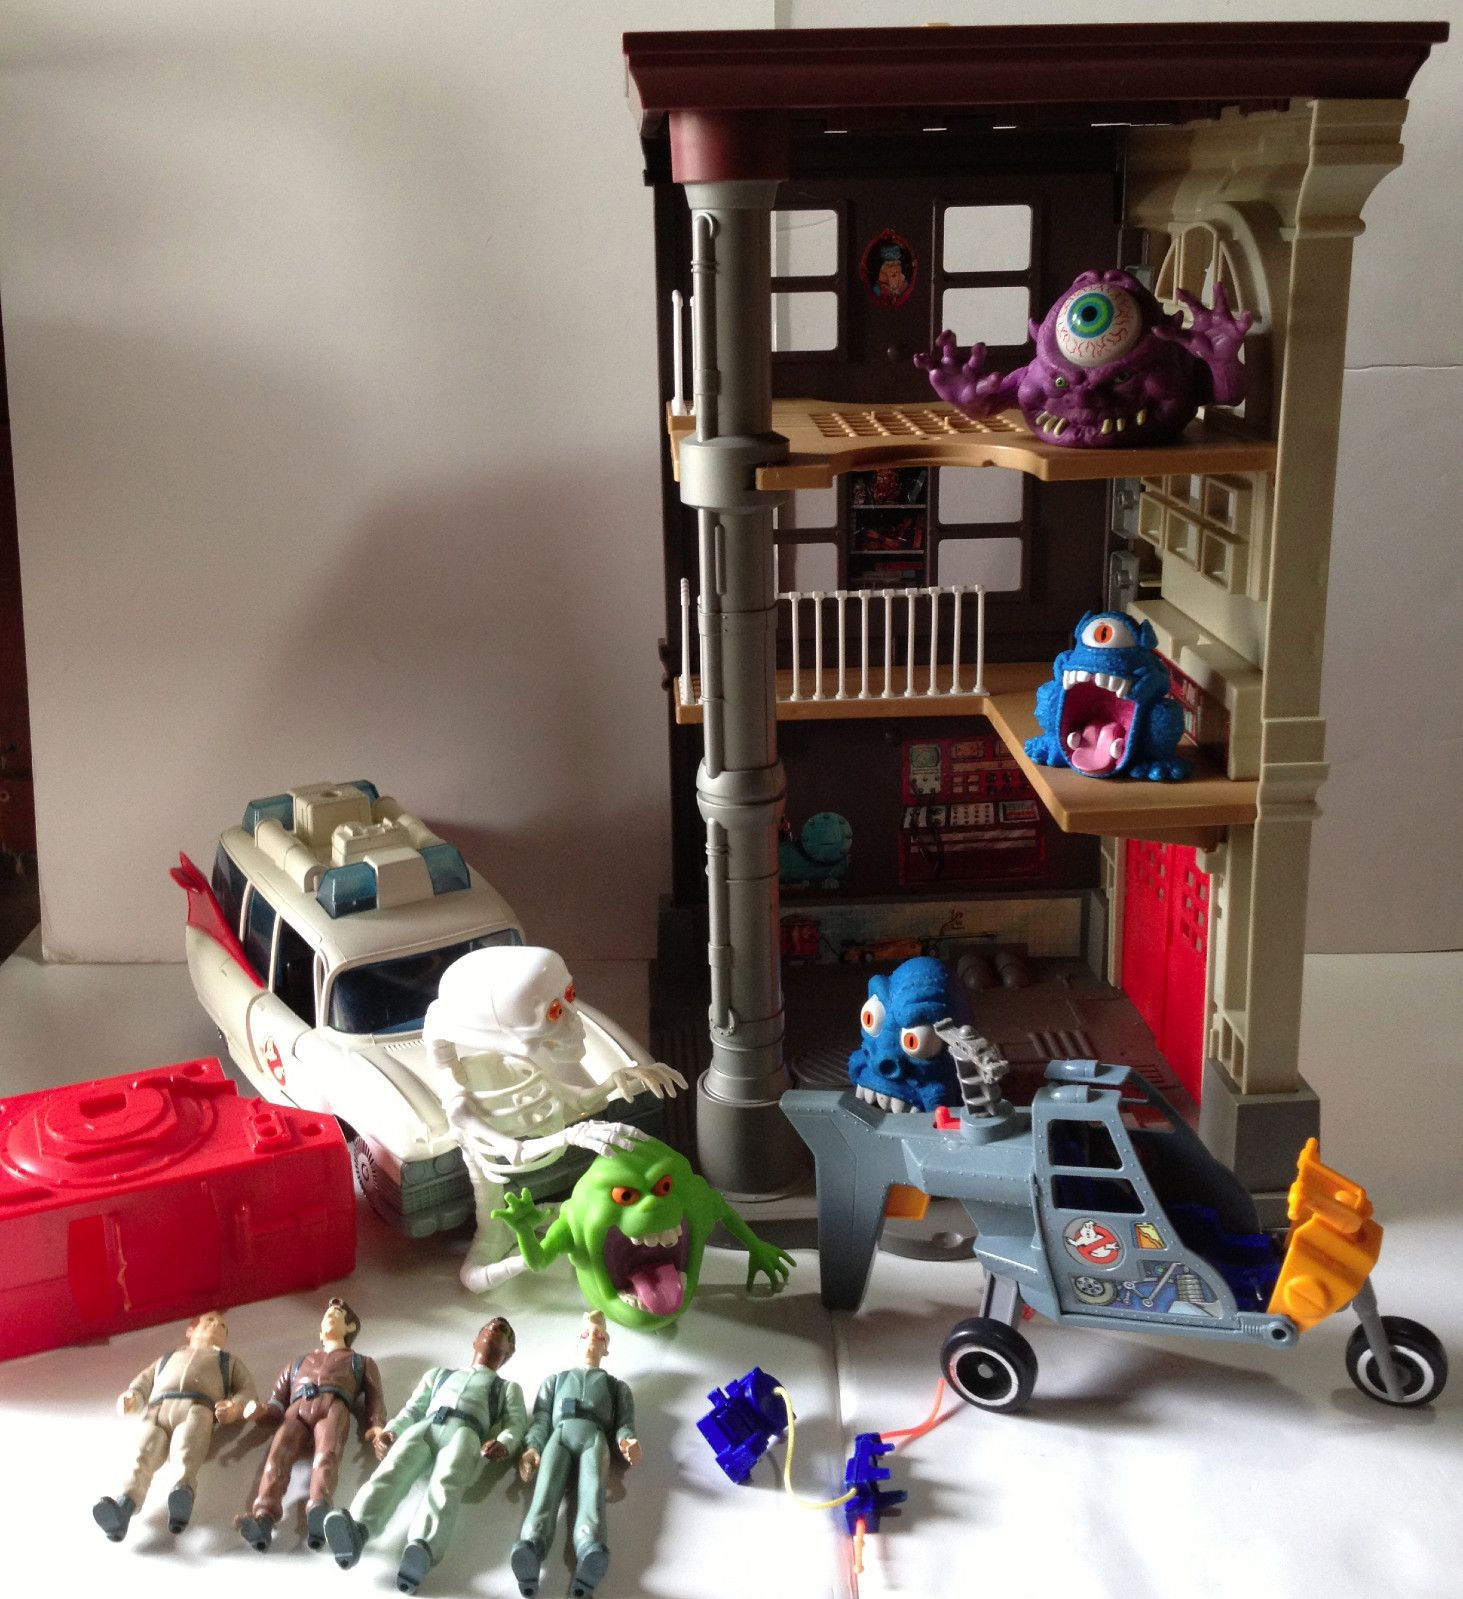 Claasic vintage toys vintage toys second shout out http www - Childhood Toys Ghostbusters Headquarters Fire House Ectomobile Figures Ghosts Vintage